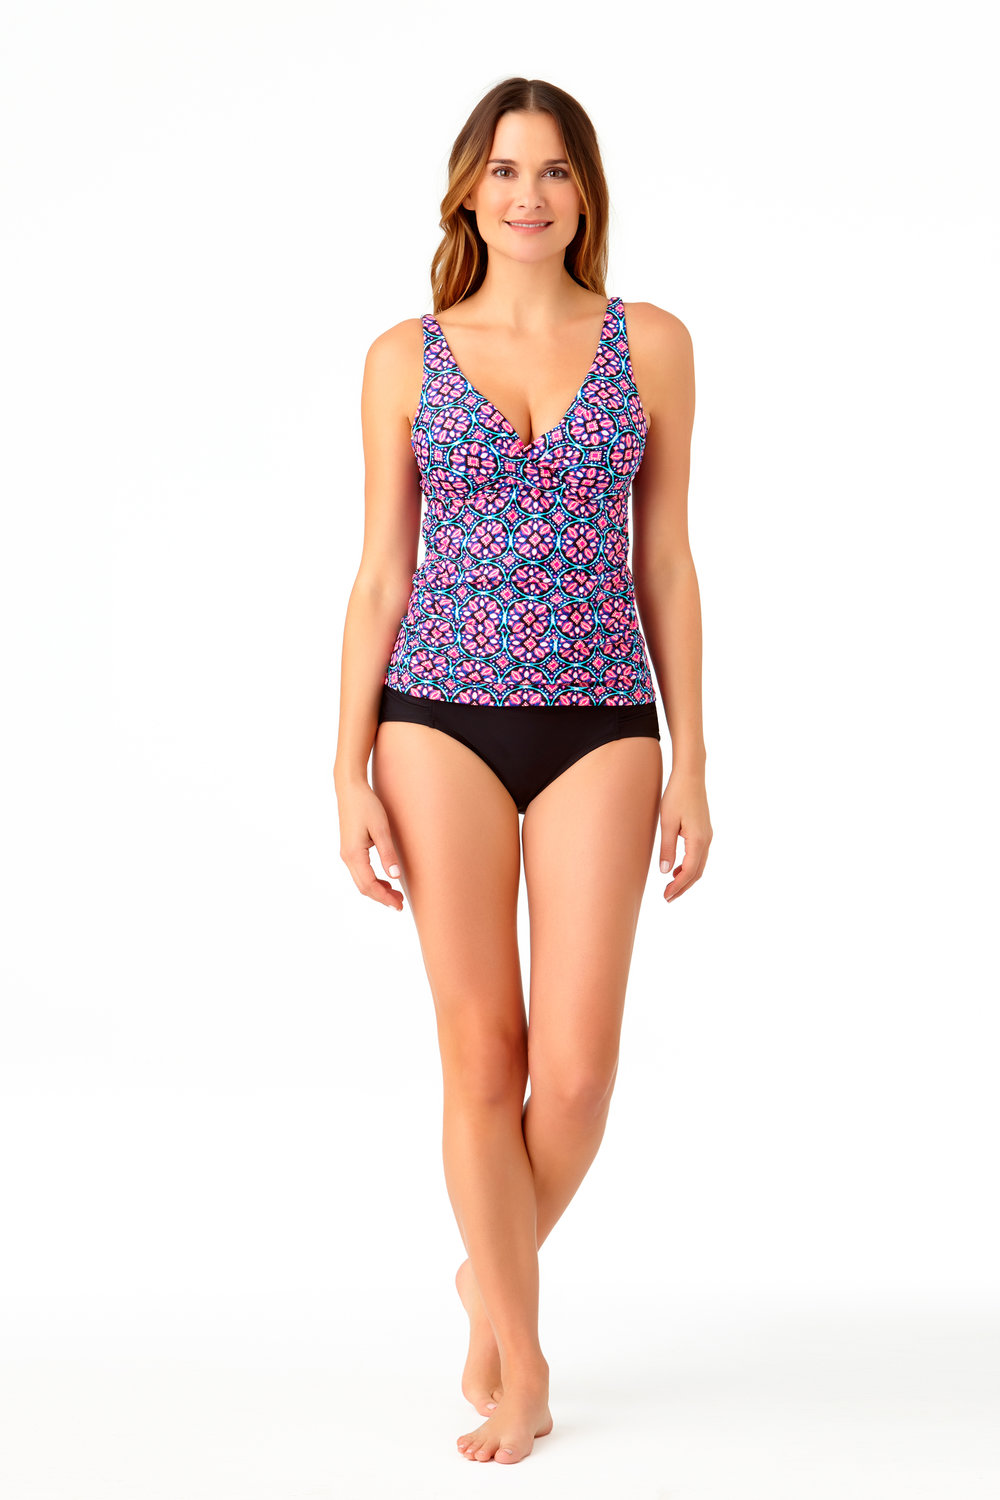 STYLE # CTL27404T / CTL27500B - Newbury Tile Tankini TopBUY NOW ON WALMARTSolid High Waist BottomBUY NOW ON WALMART